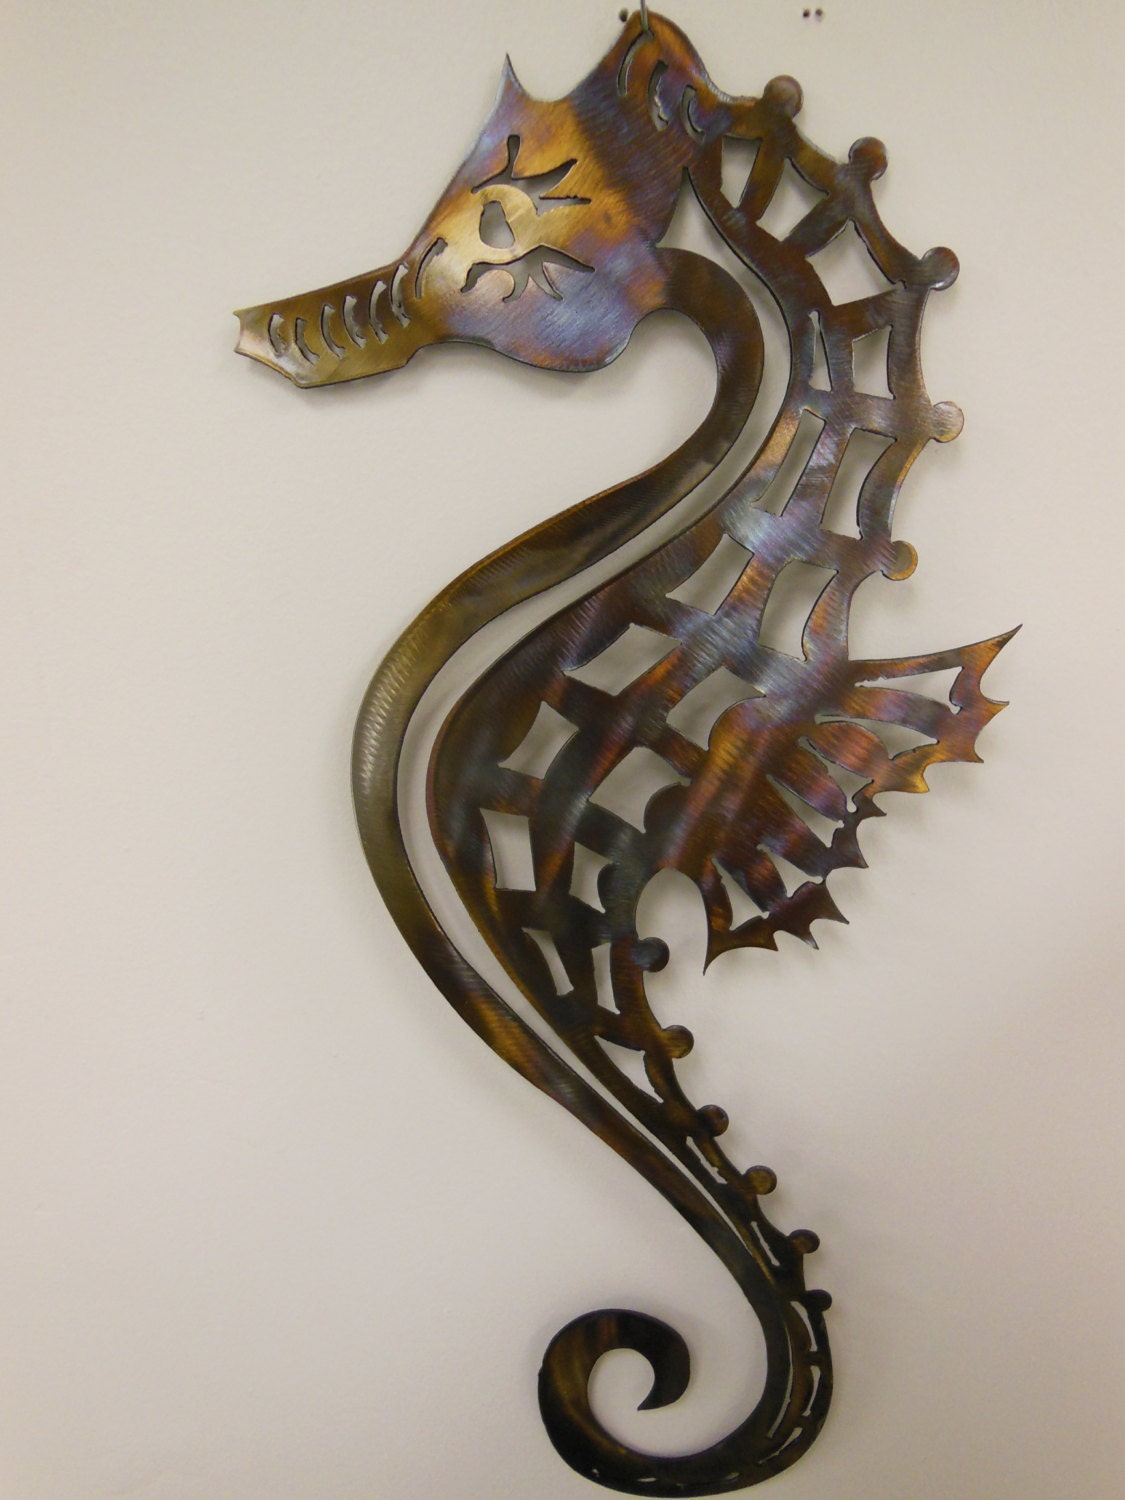 Metal Sculptures And Art Wall Decor: Seahorse Metal Art Wall Sculpture In Aluminum Or Stainless